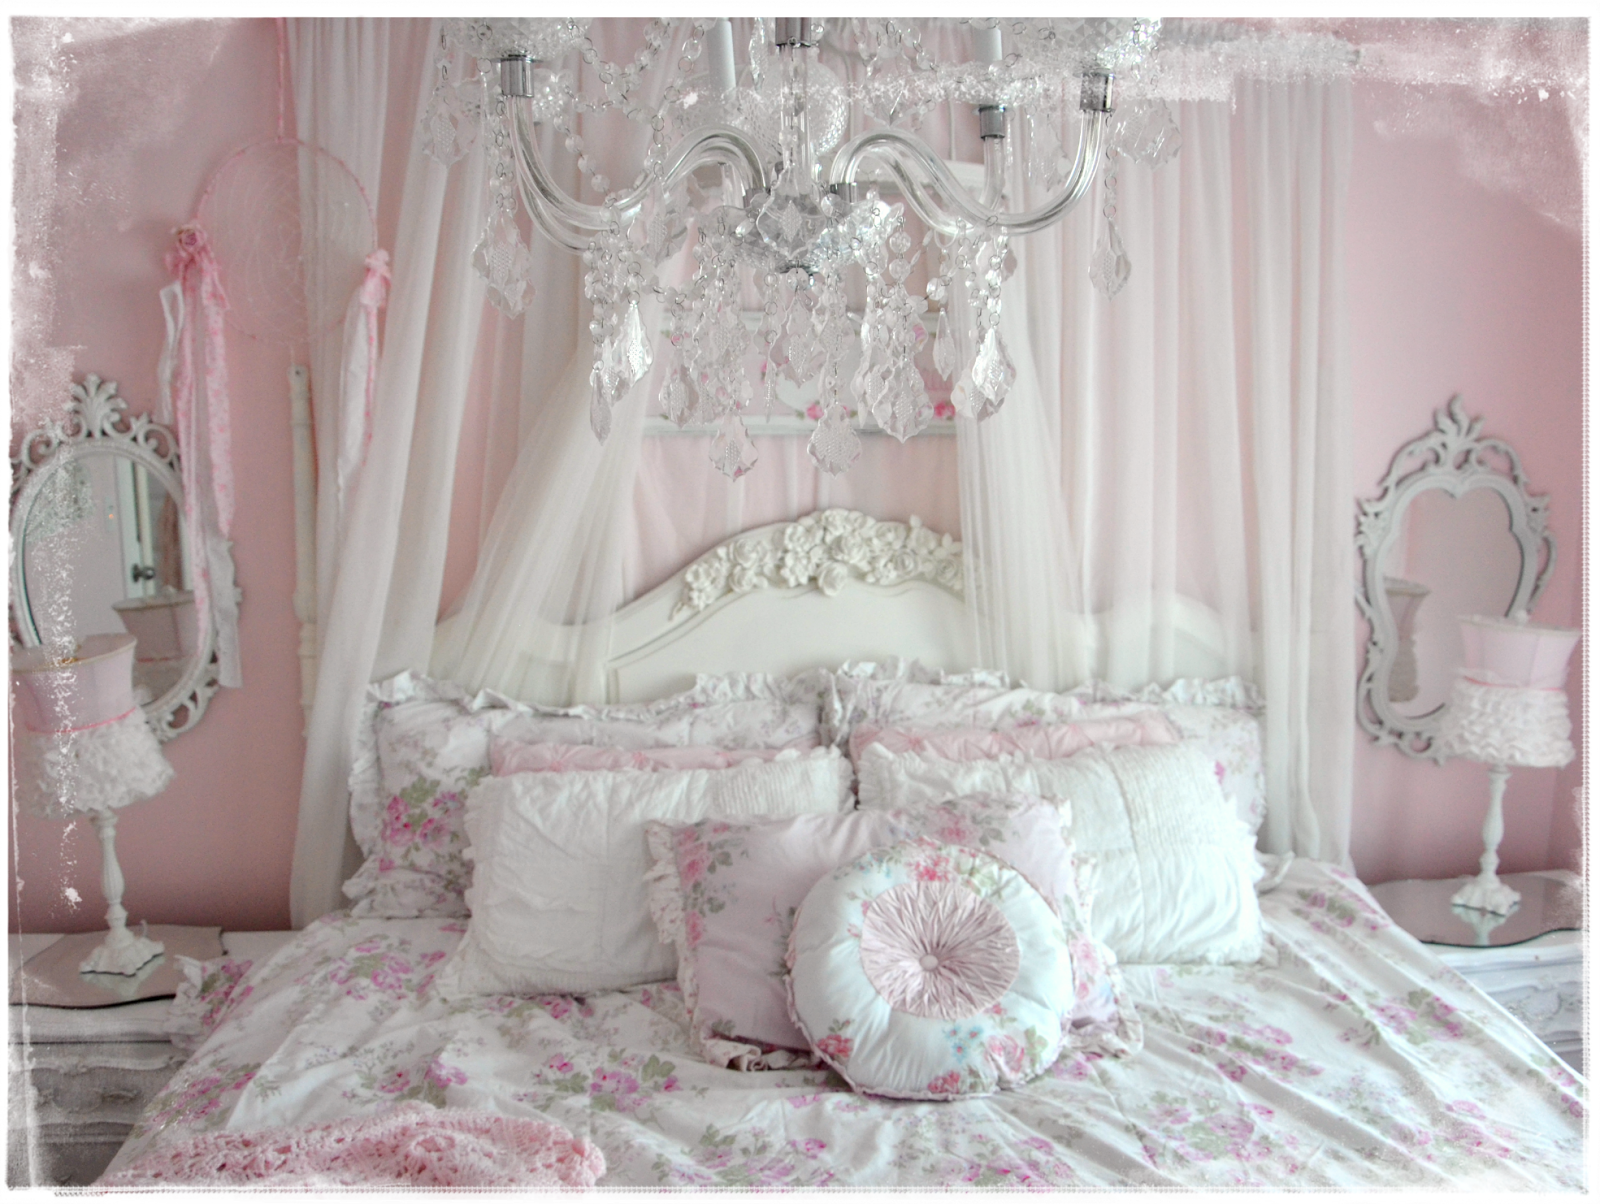 Not so shabby shabby chic new simply shabby chic bedding decoraci n shabby chic - Habitaciones shabby chic ...